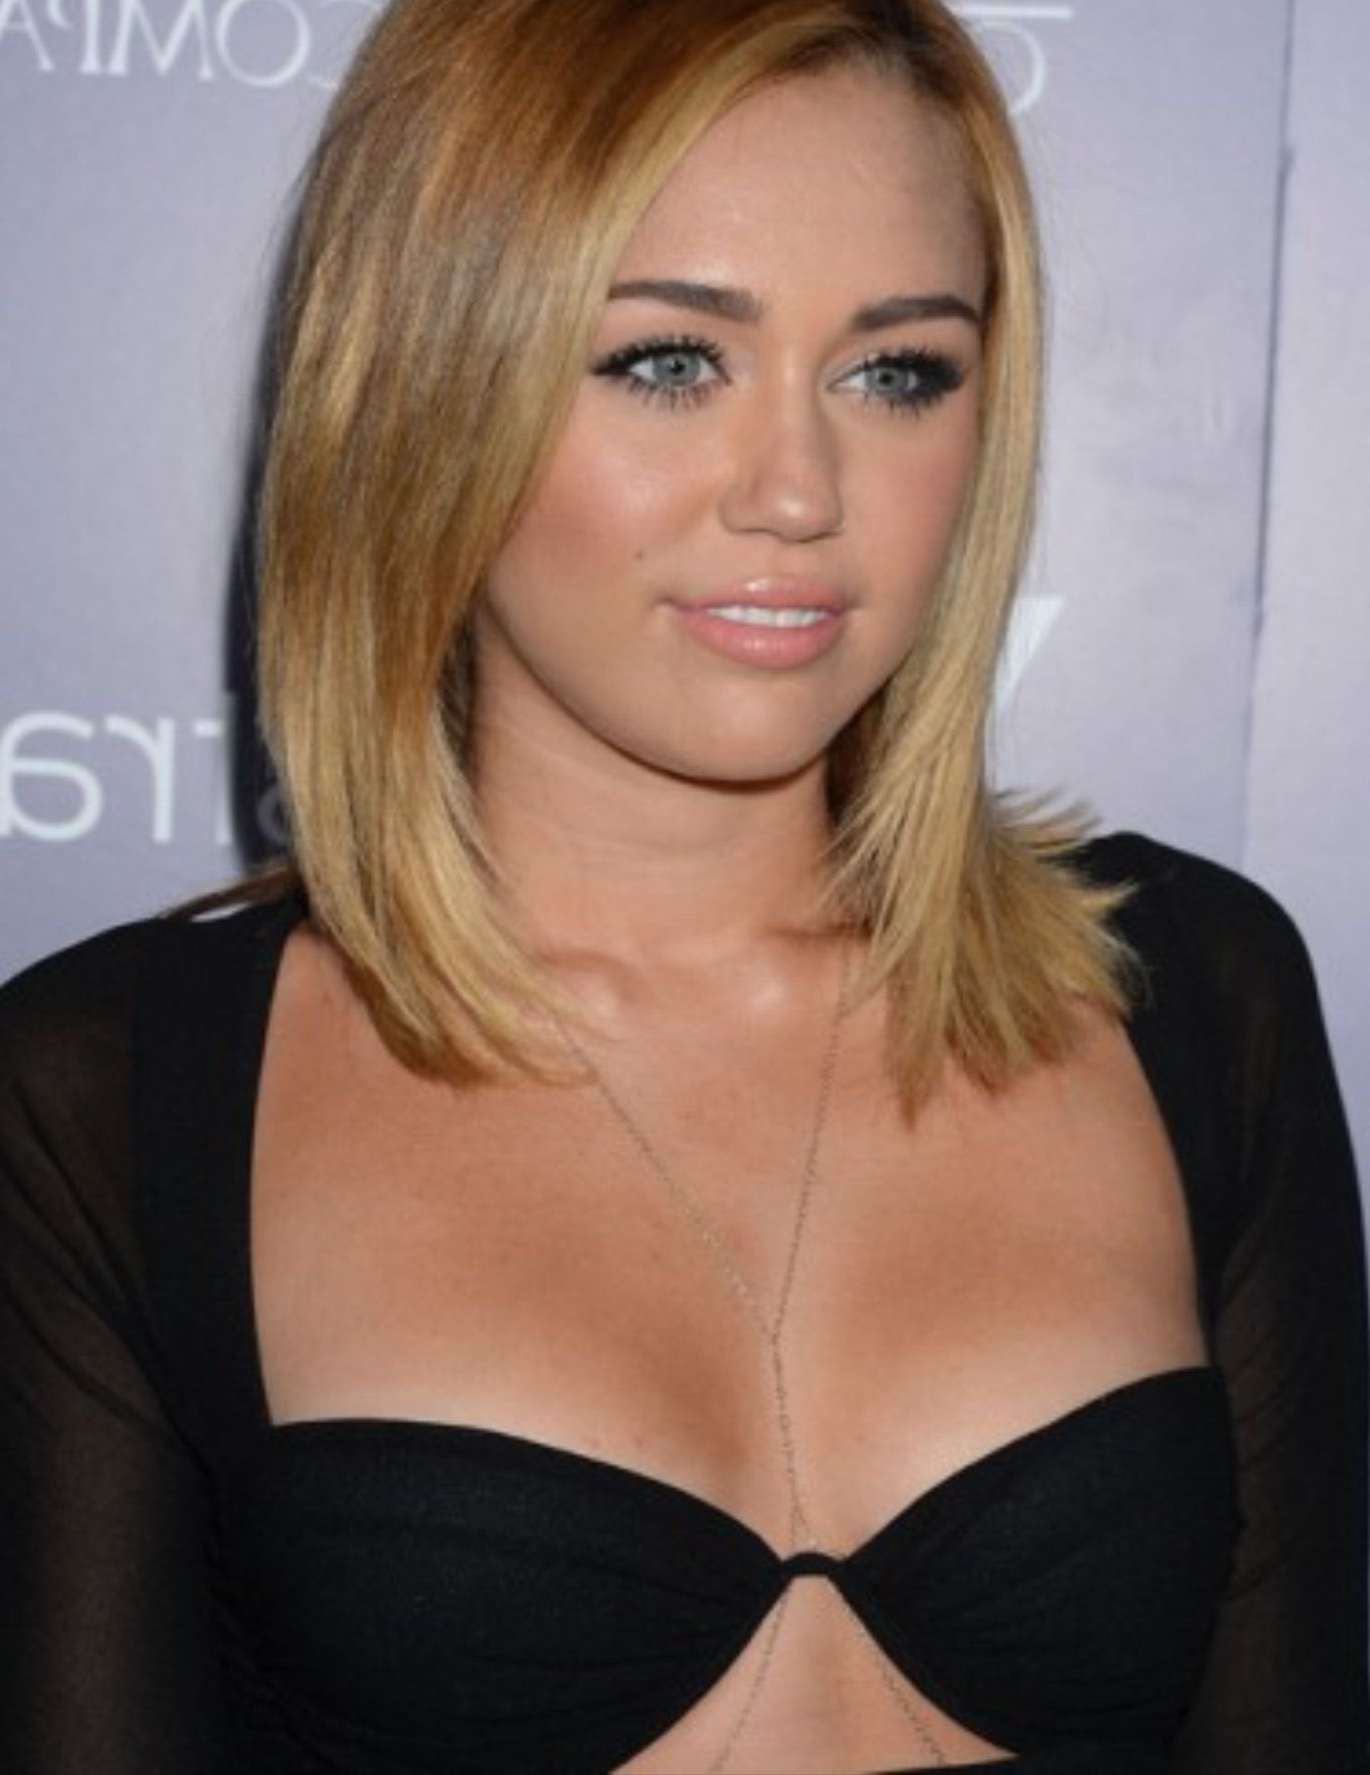 Miley Cyrus Mid Length Hair (View 12 of 20)